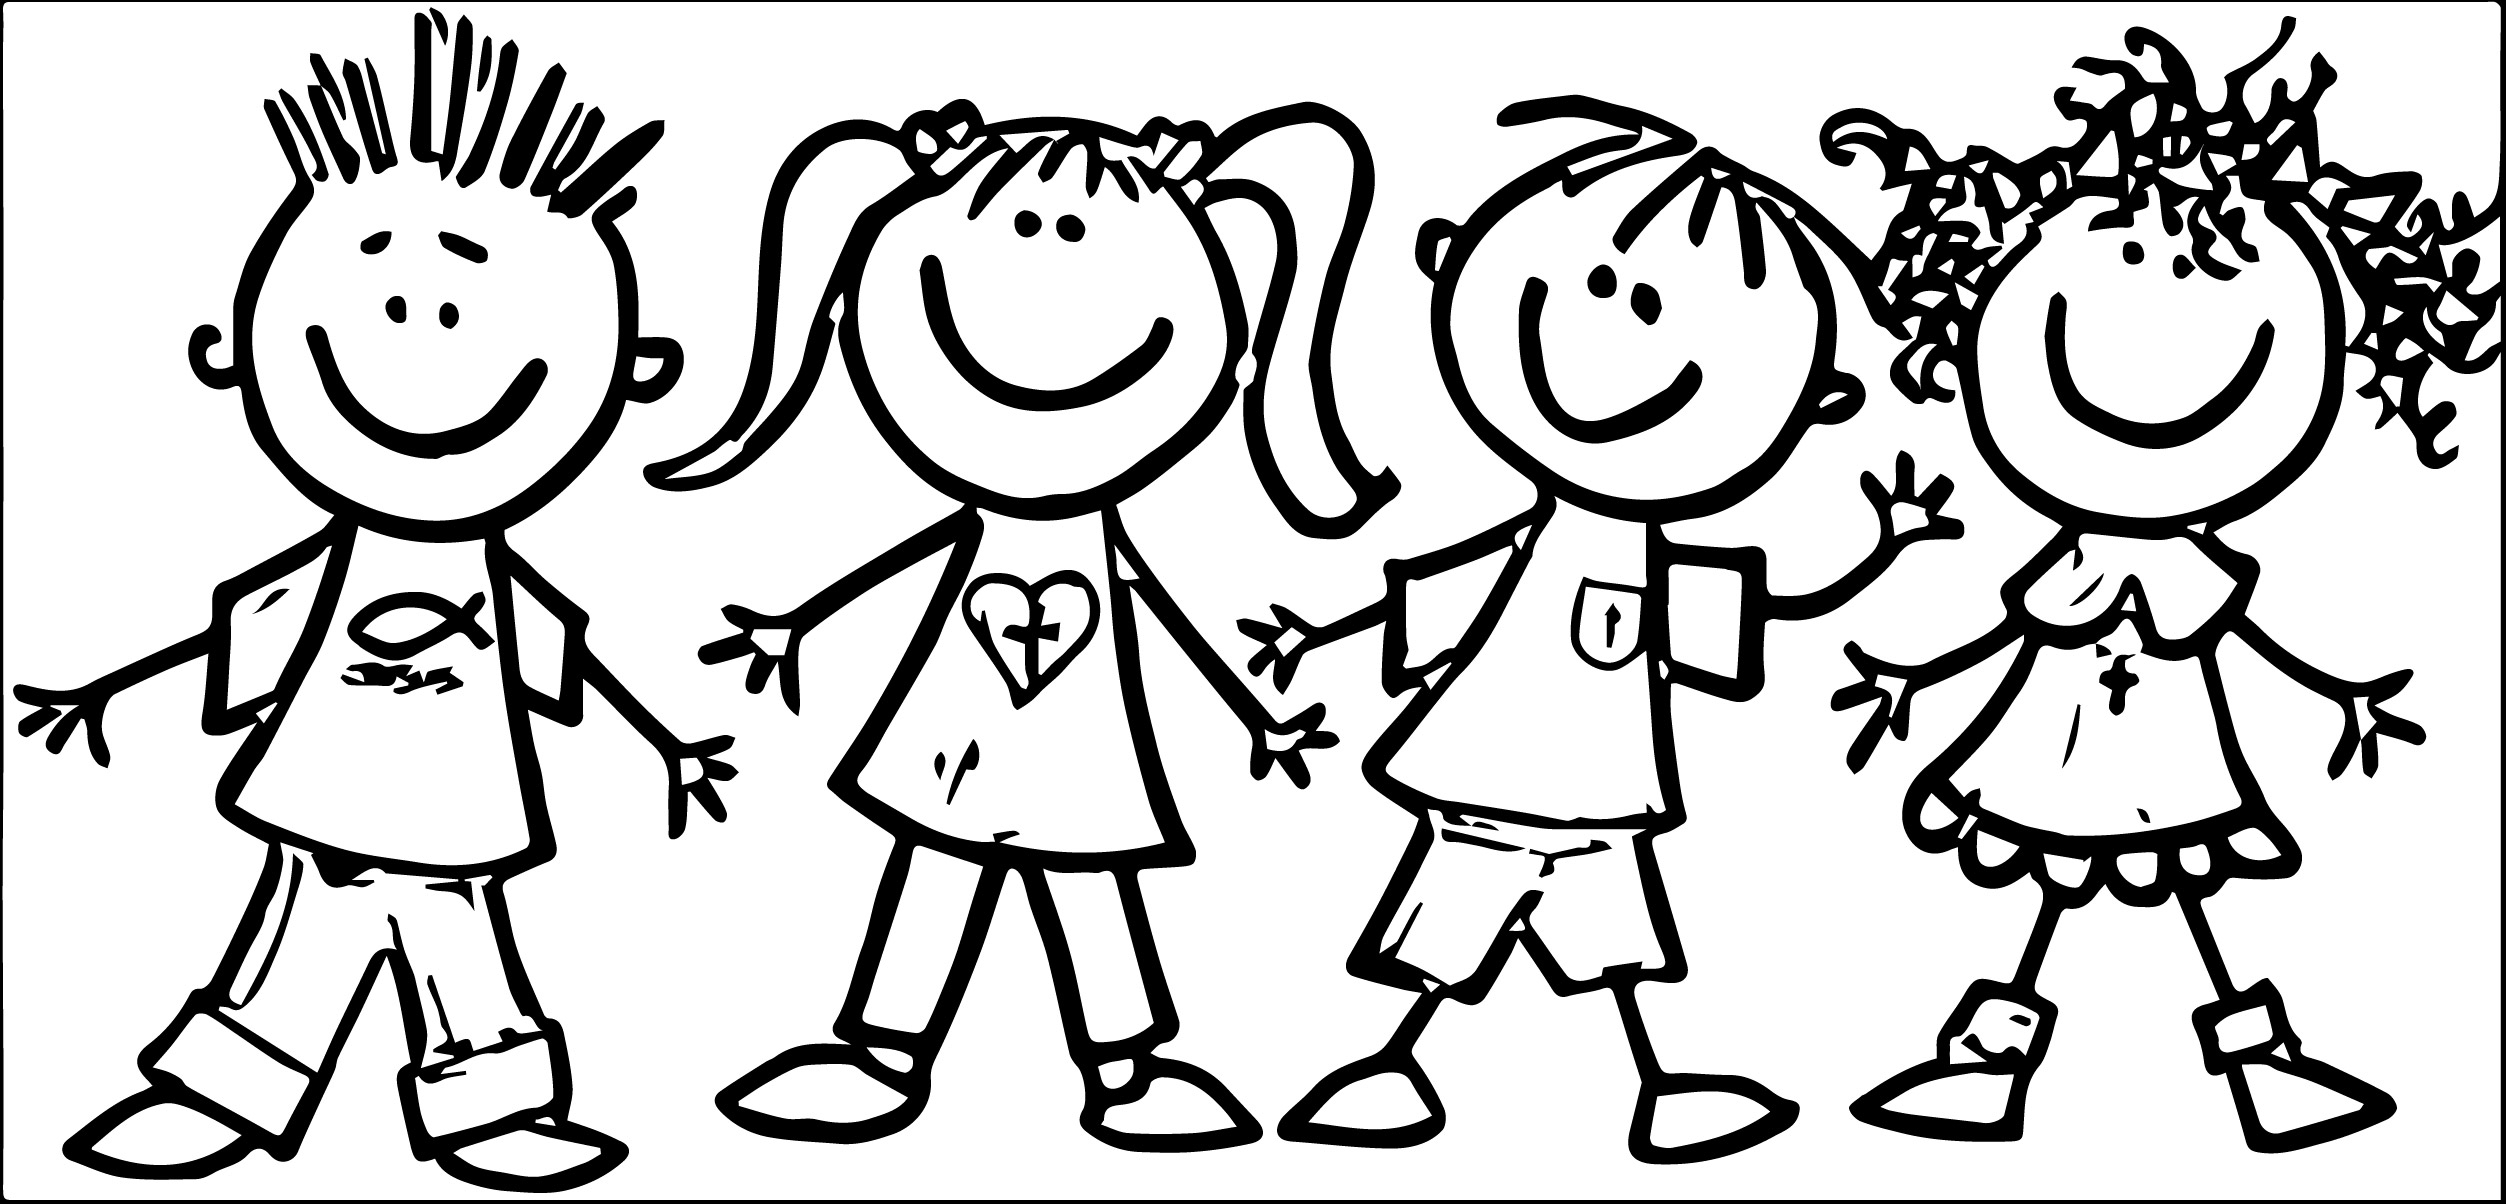 New friends design digital. Friendship clipart black and white clip art royalty free download